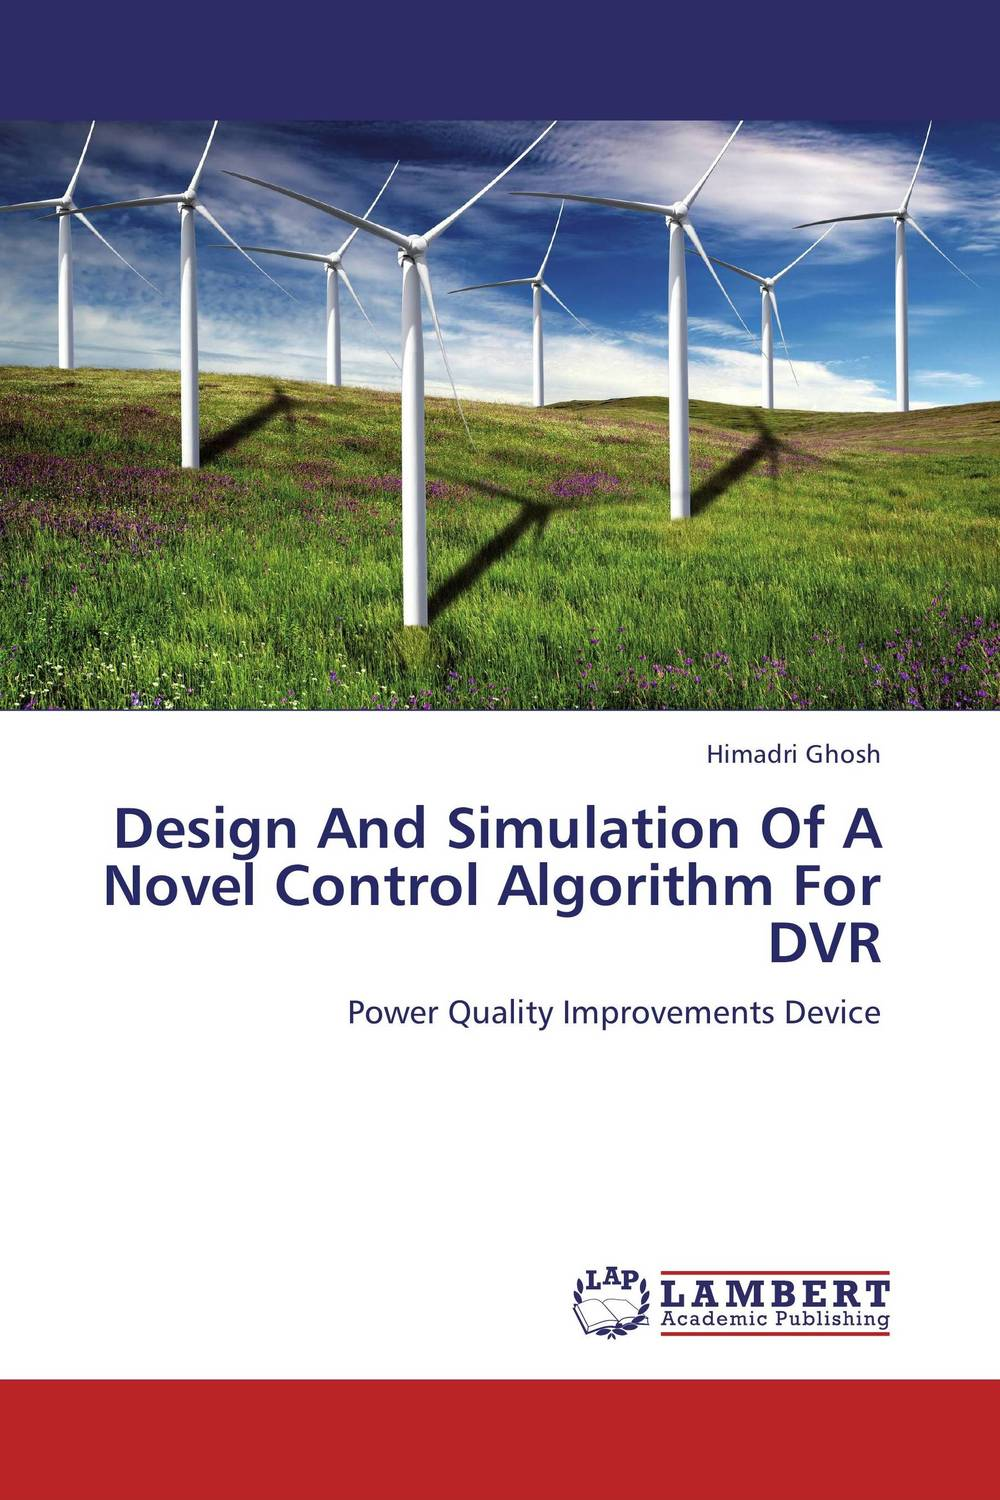 Design And Simulation Of A Novel Control Algorithm For DVR jp 54 8 фигурка ангелочек pavone